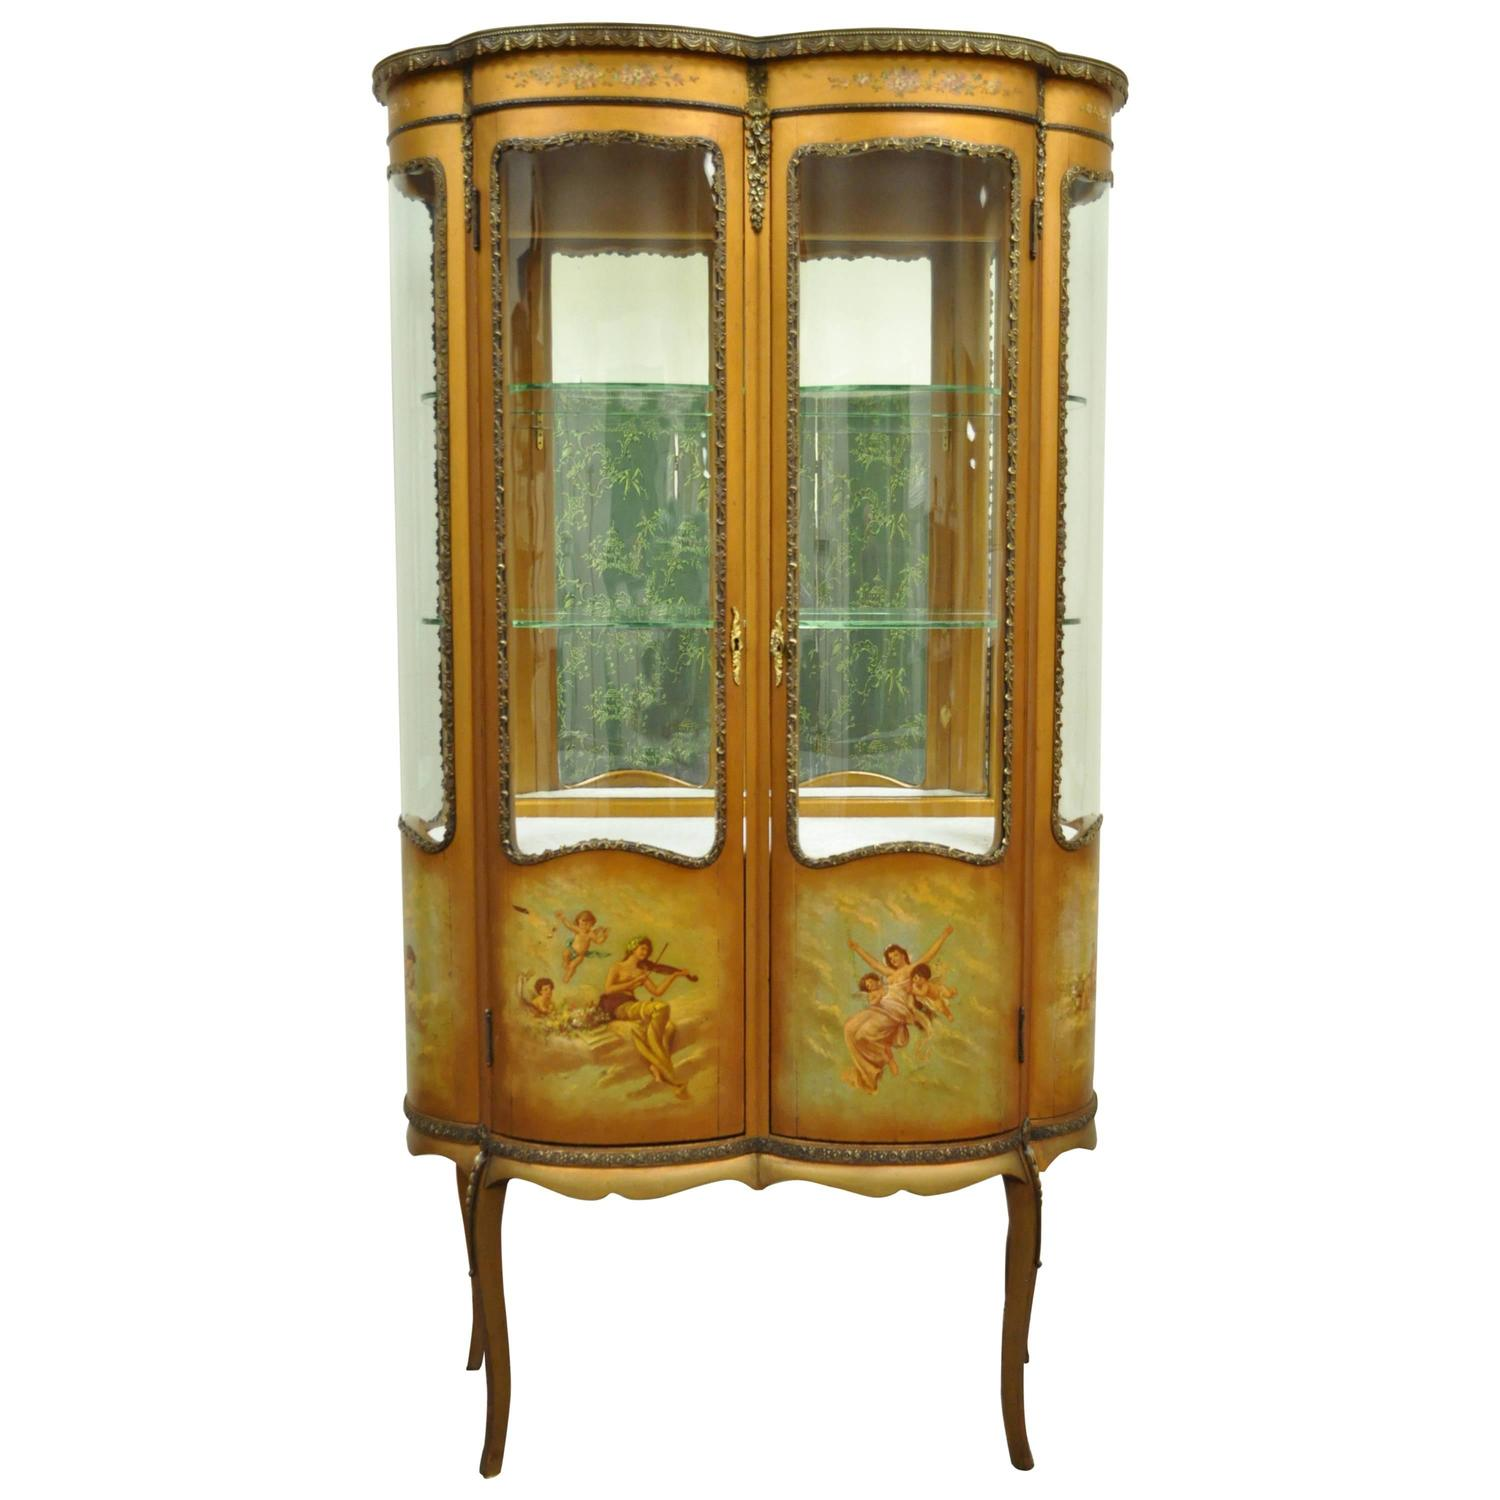 antique french curio cabinet antique furniture. Black Bedroom Furniture Sets. Home Design Ideas